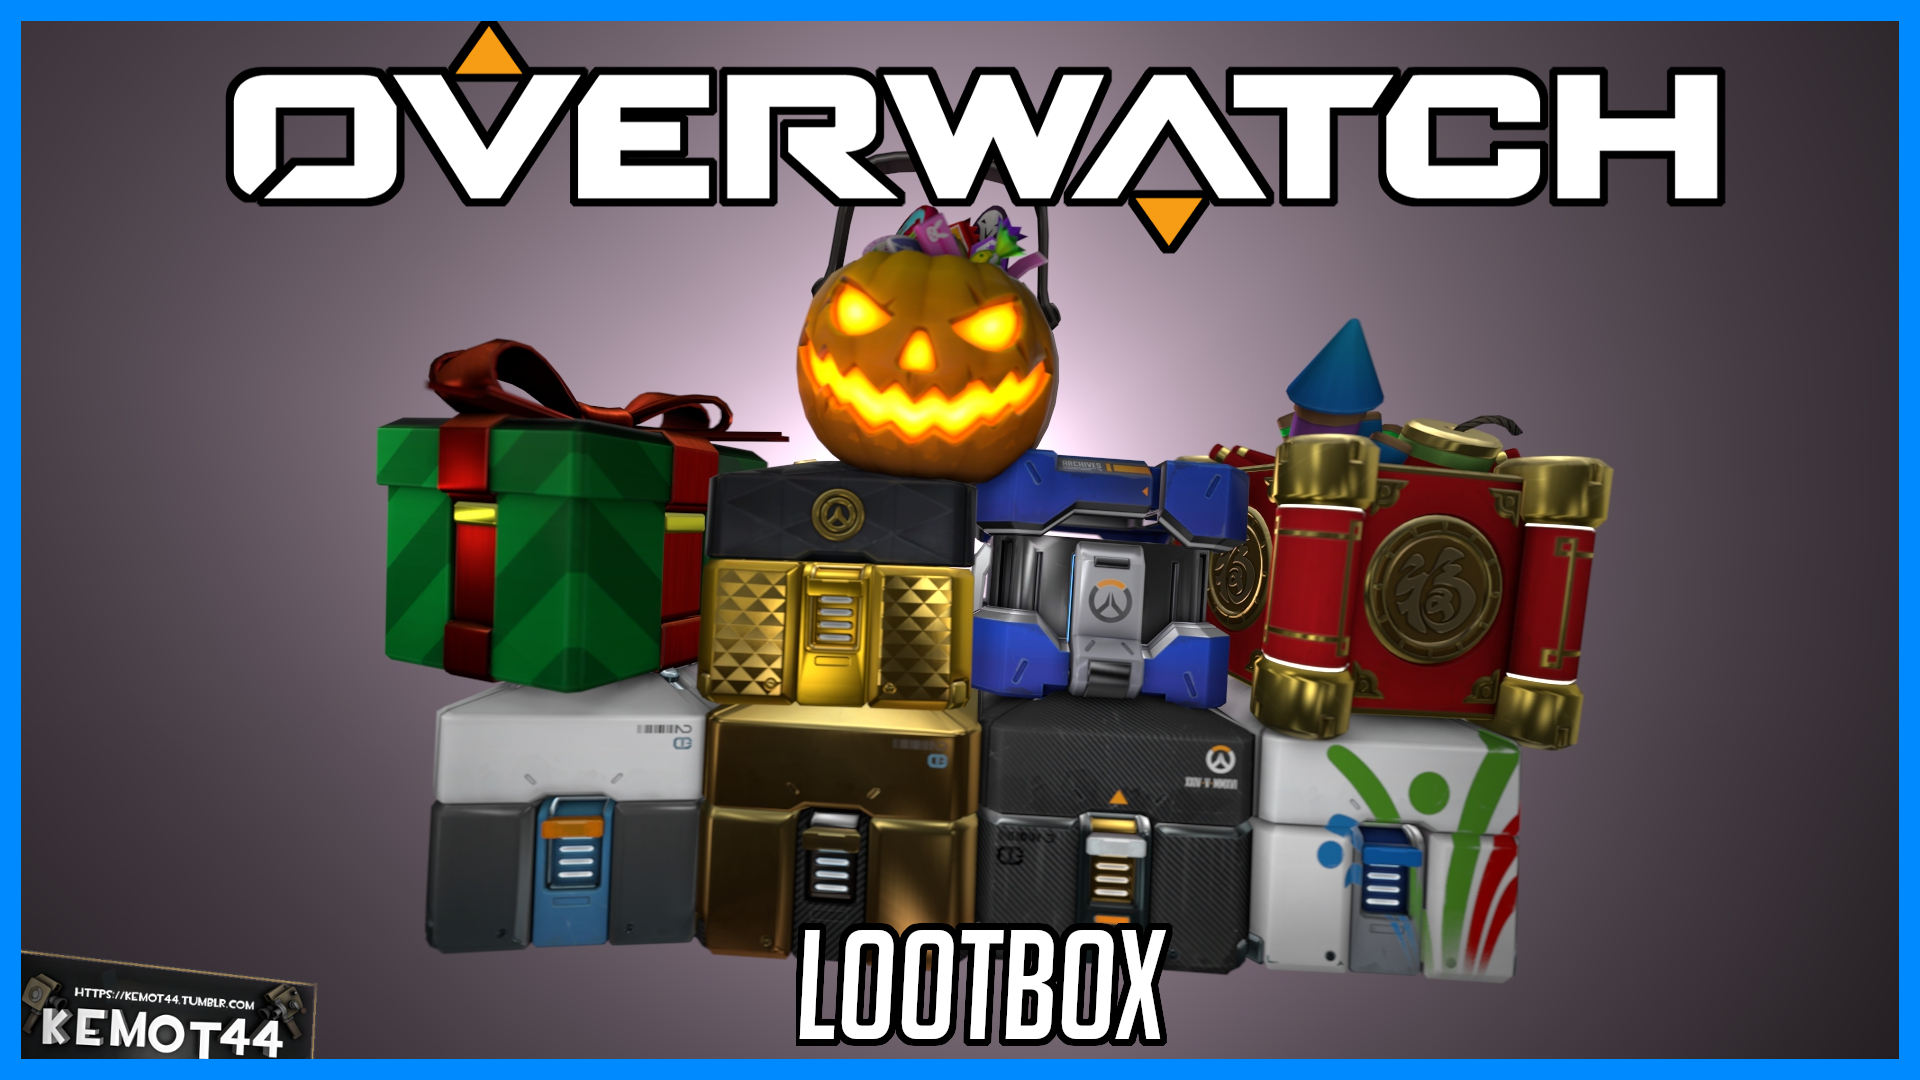 Steam Workshop :: [Overwatch] 9 Lootbox (All)